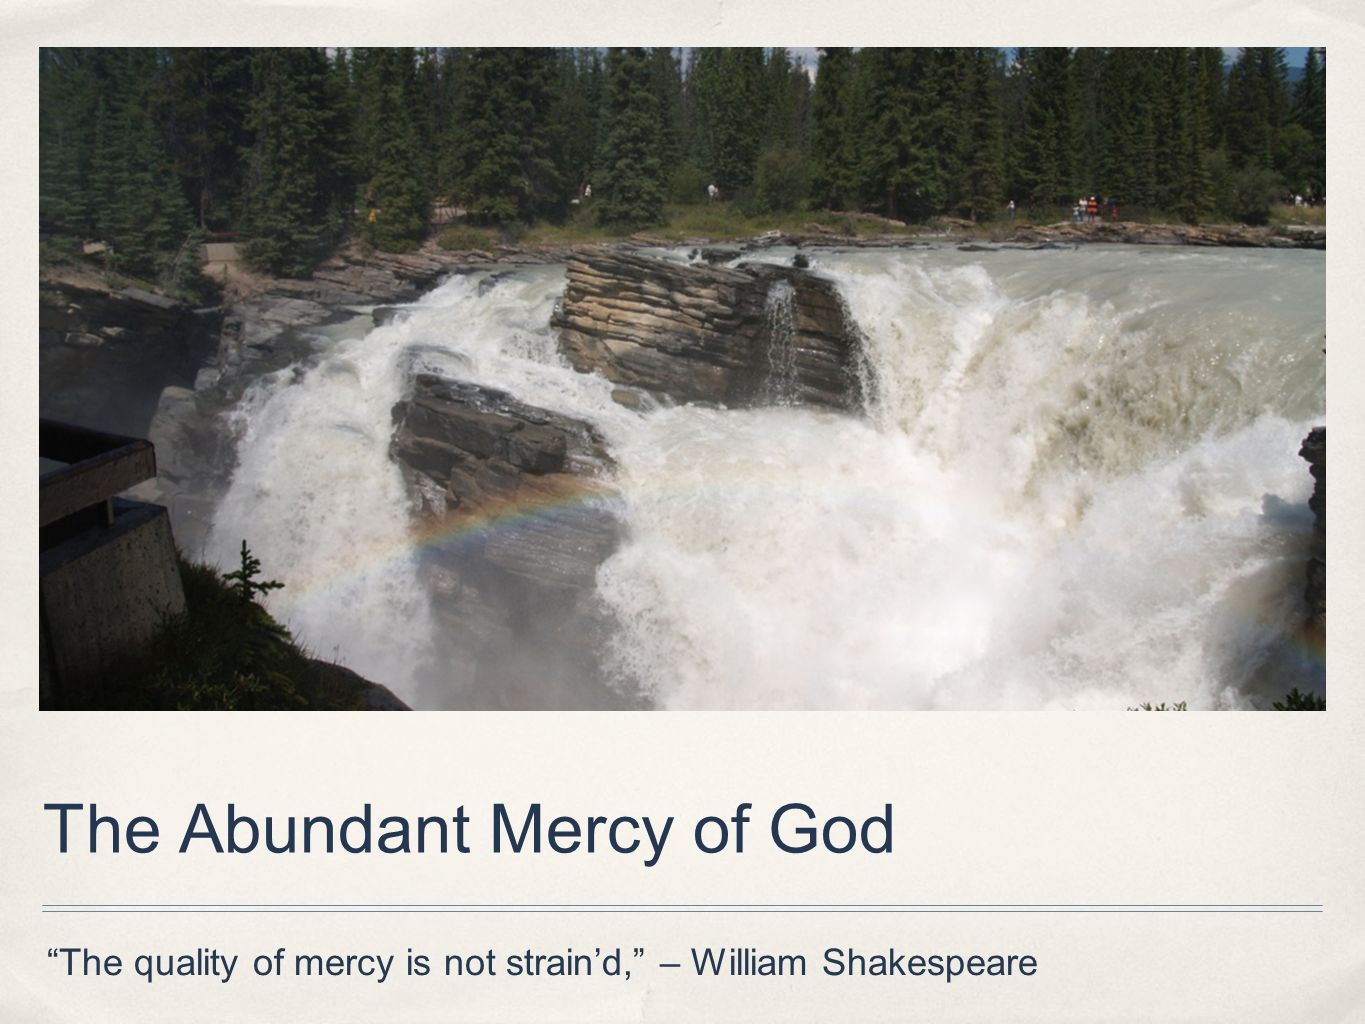 The Abundant Mercy of God